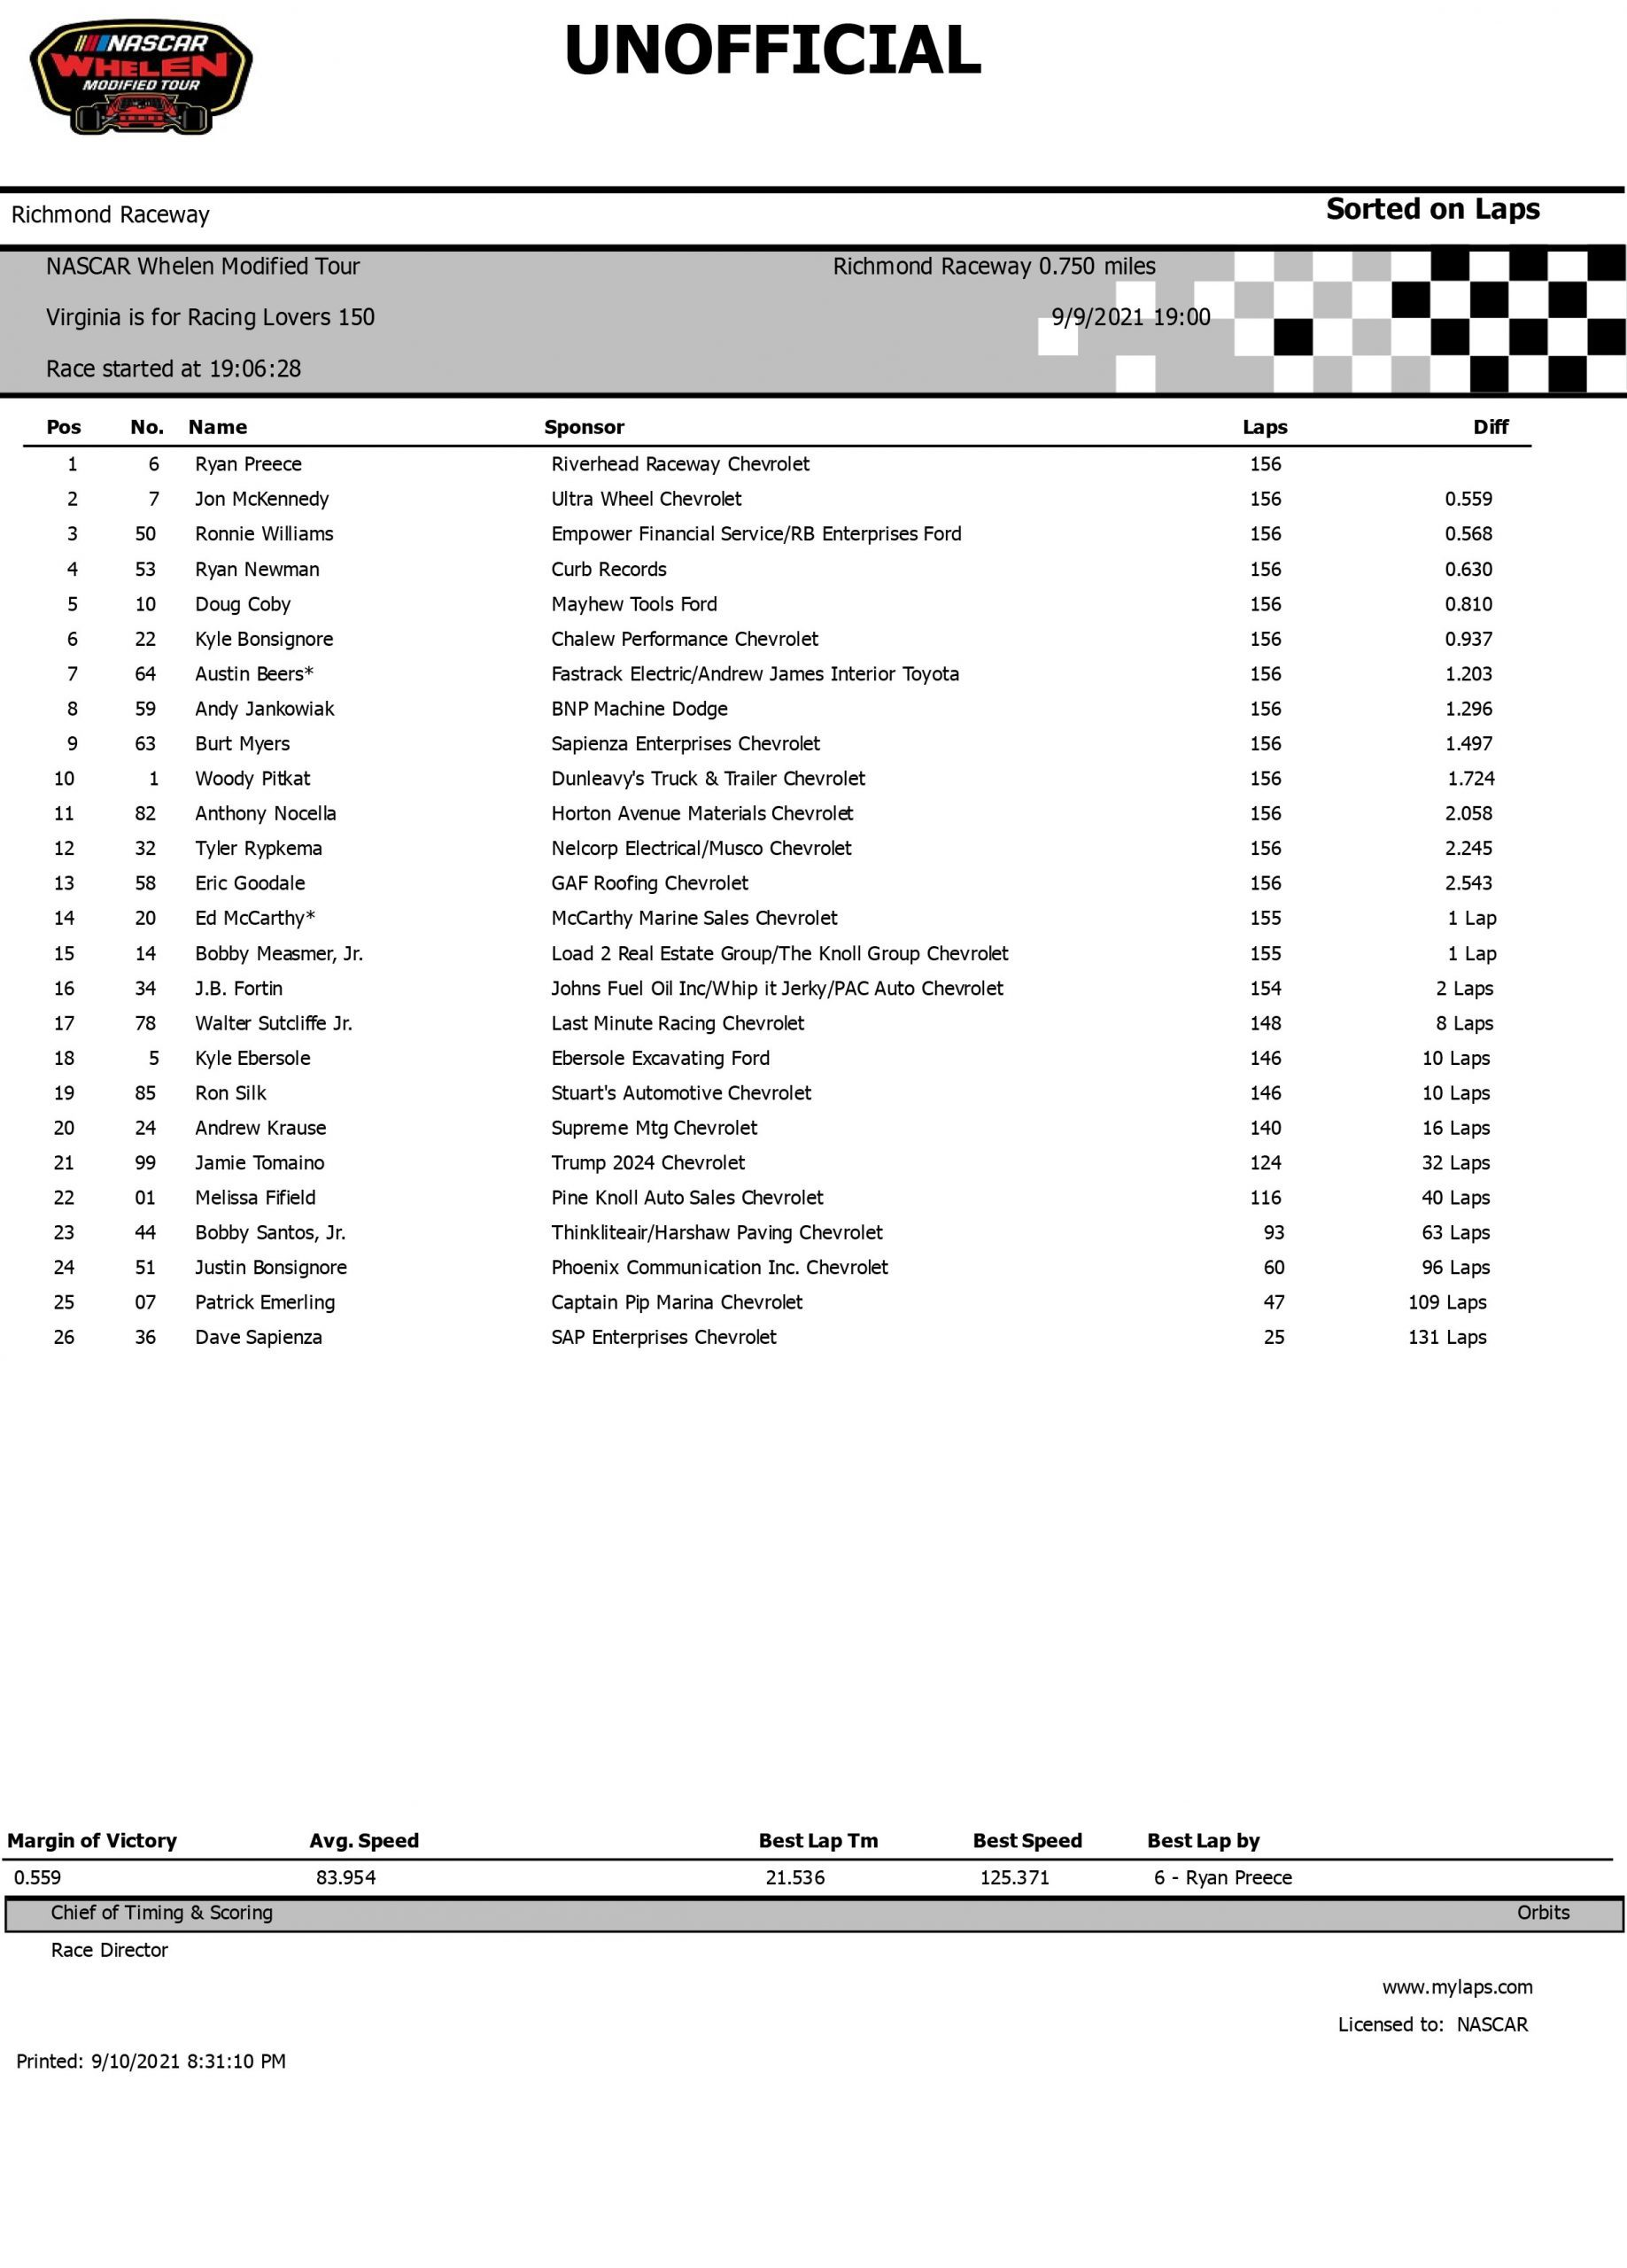 Nascar Whelen Modified Tour Virginia Is For Racing Lovers 150 Race Results